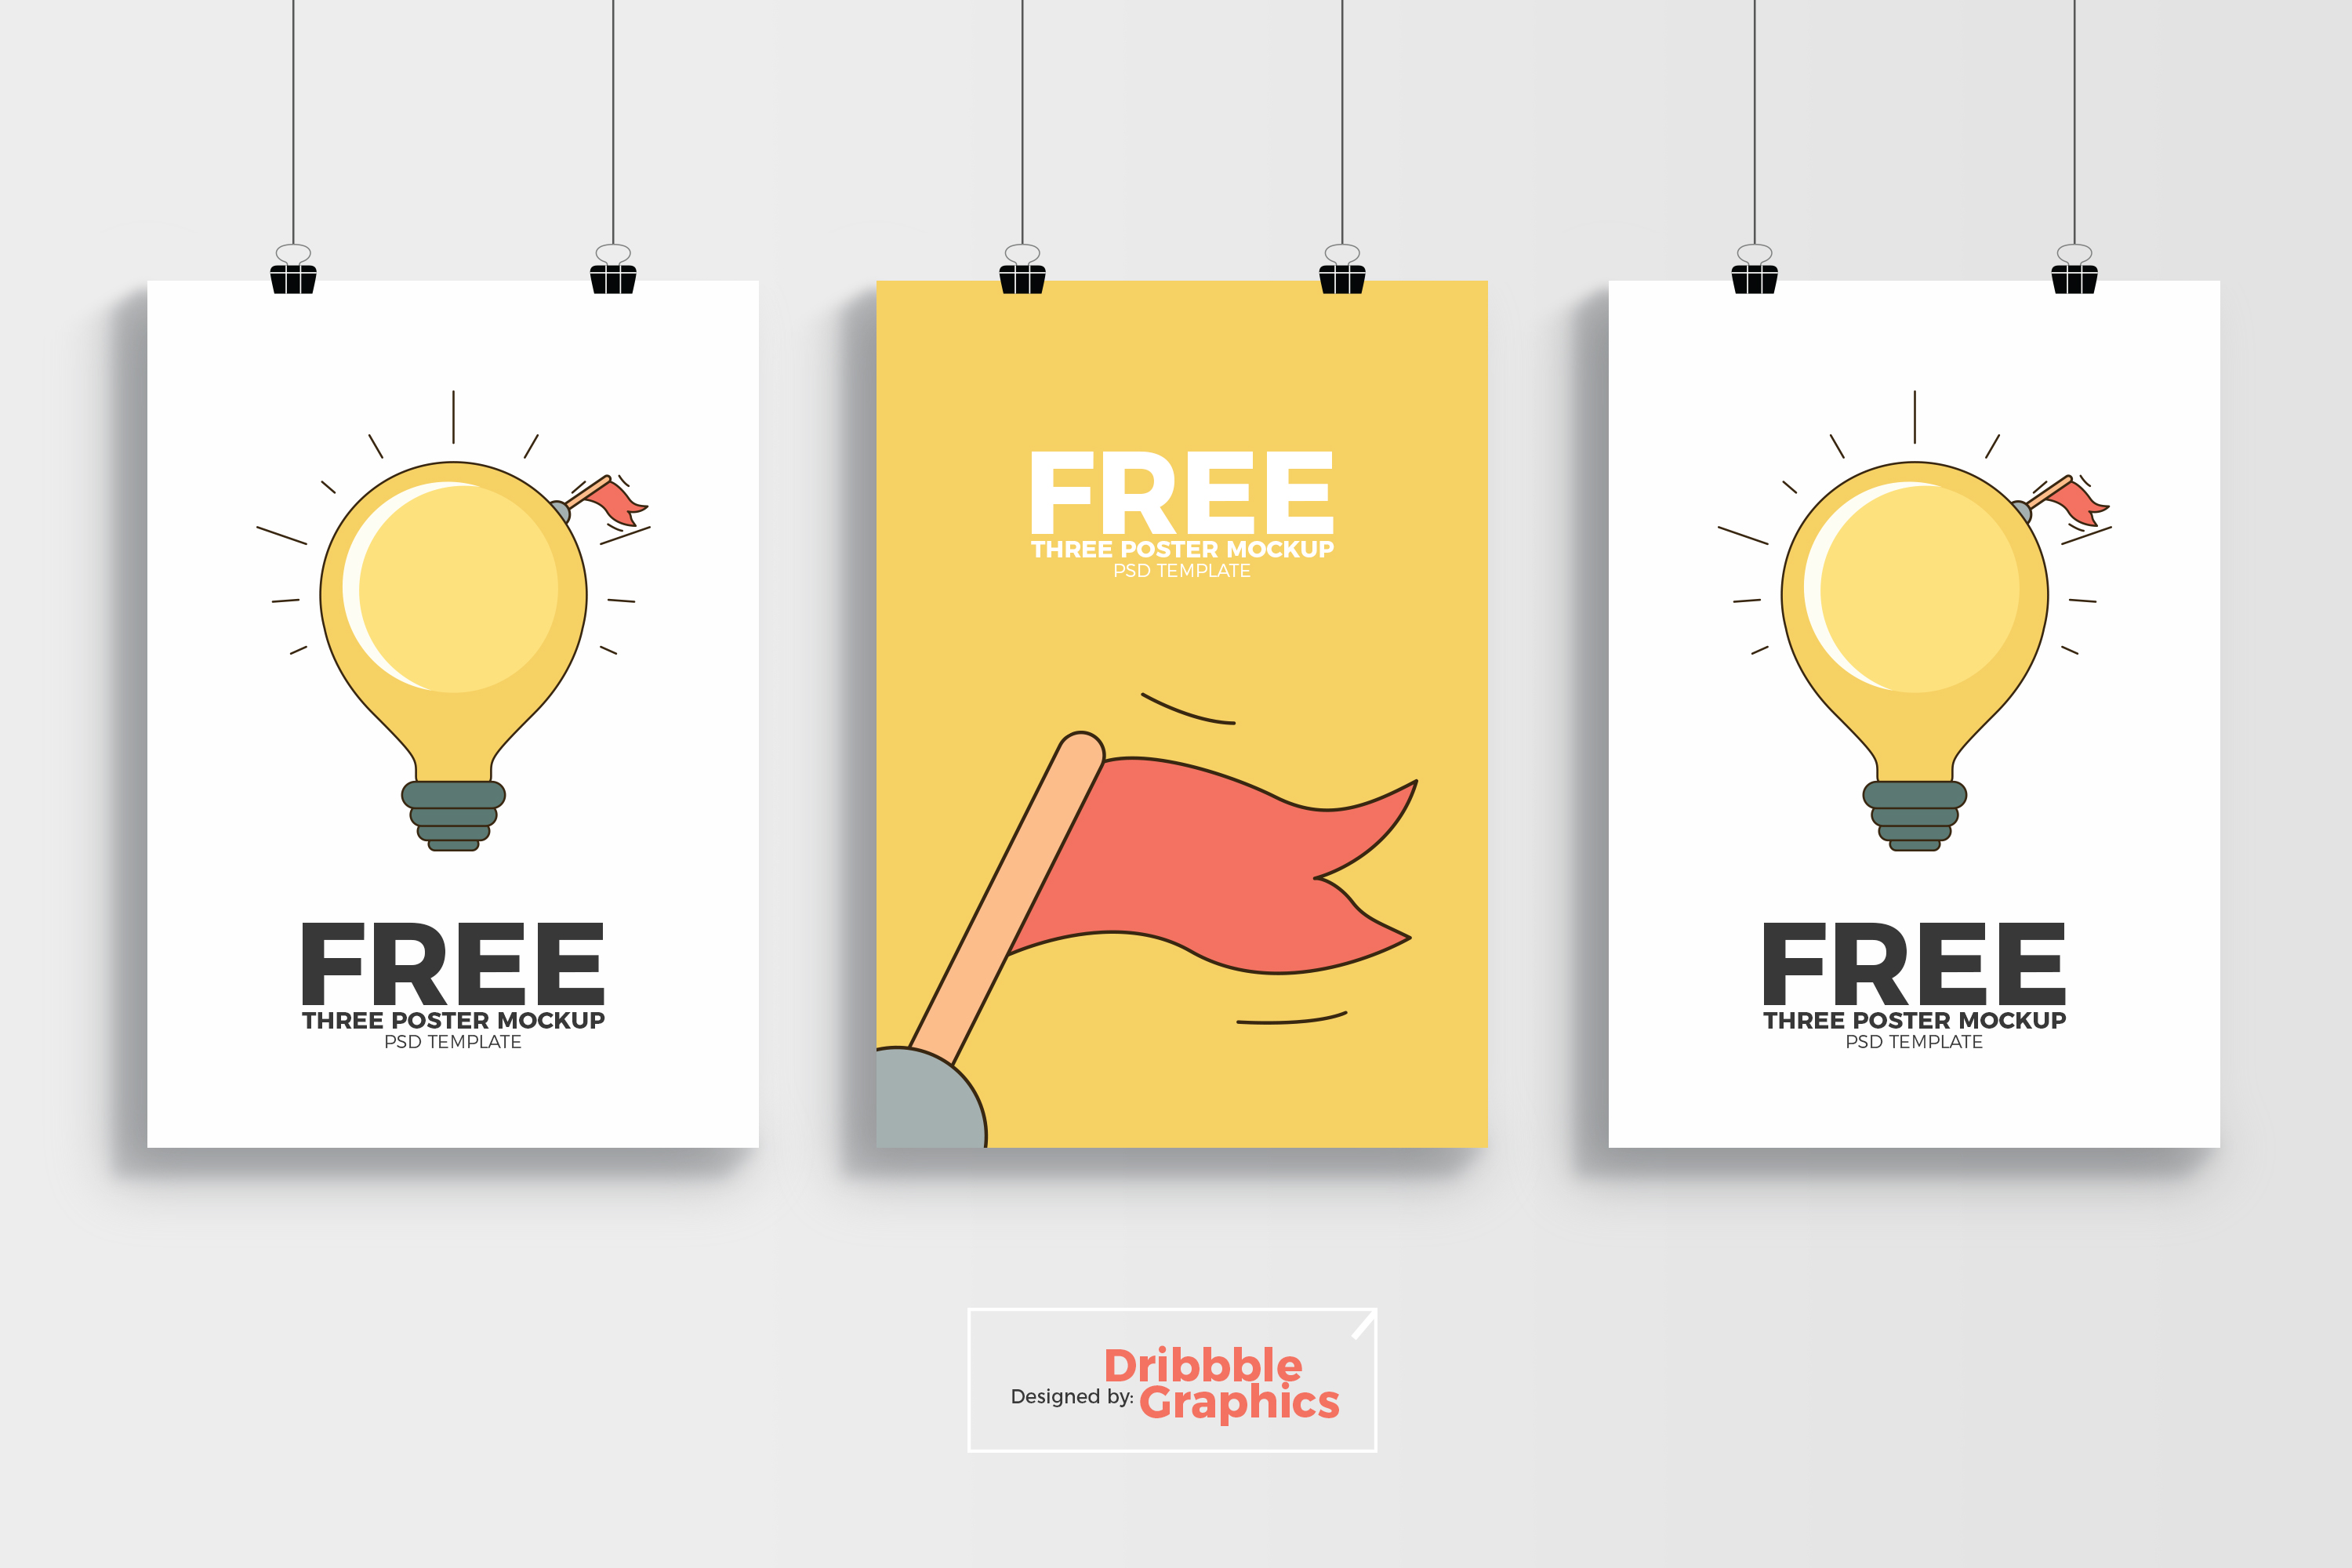 Card Ideas Free 3 Poster Mockup Psd Template Dribbble Graphics